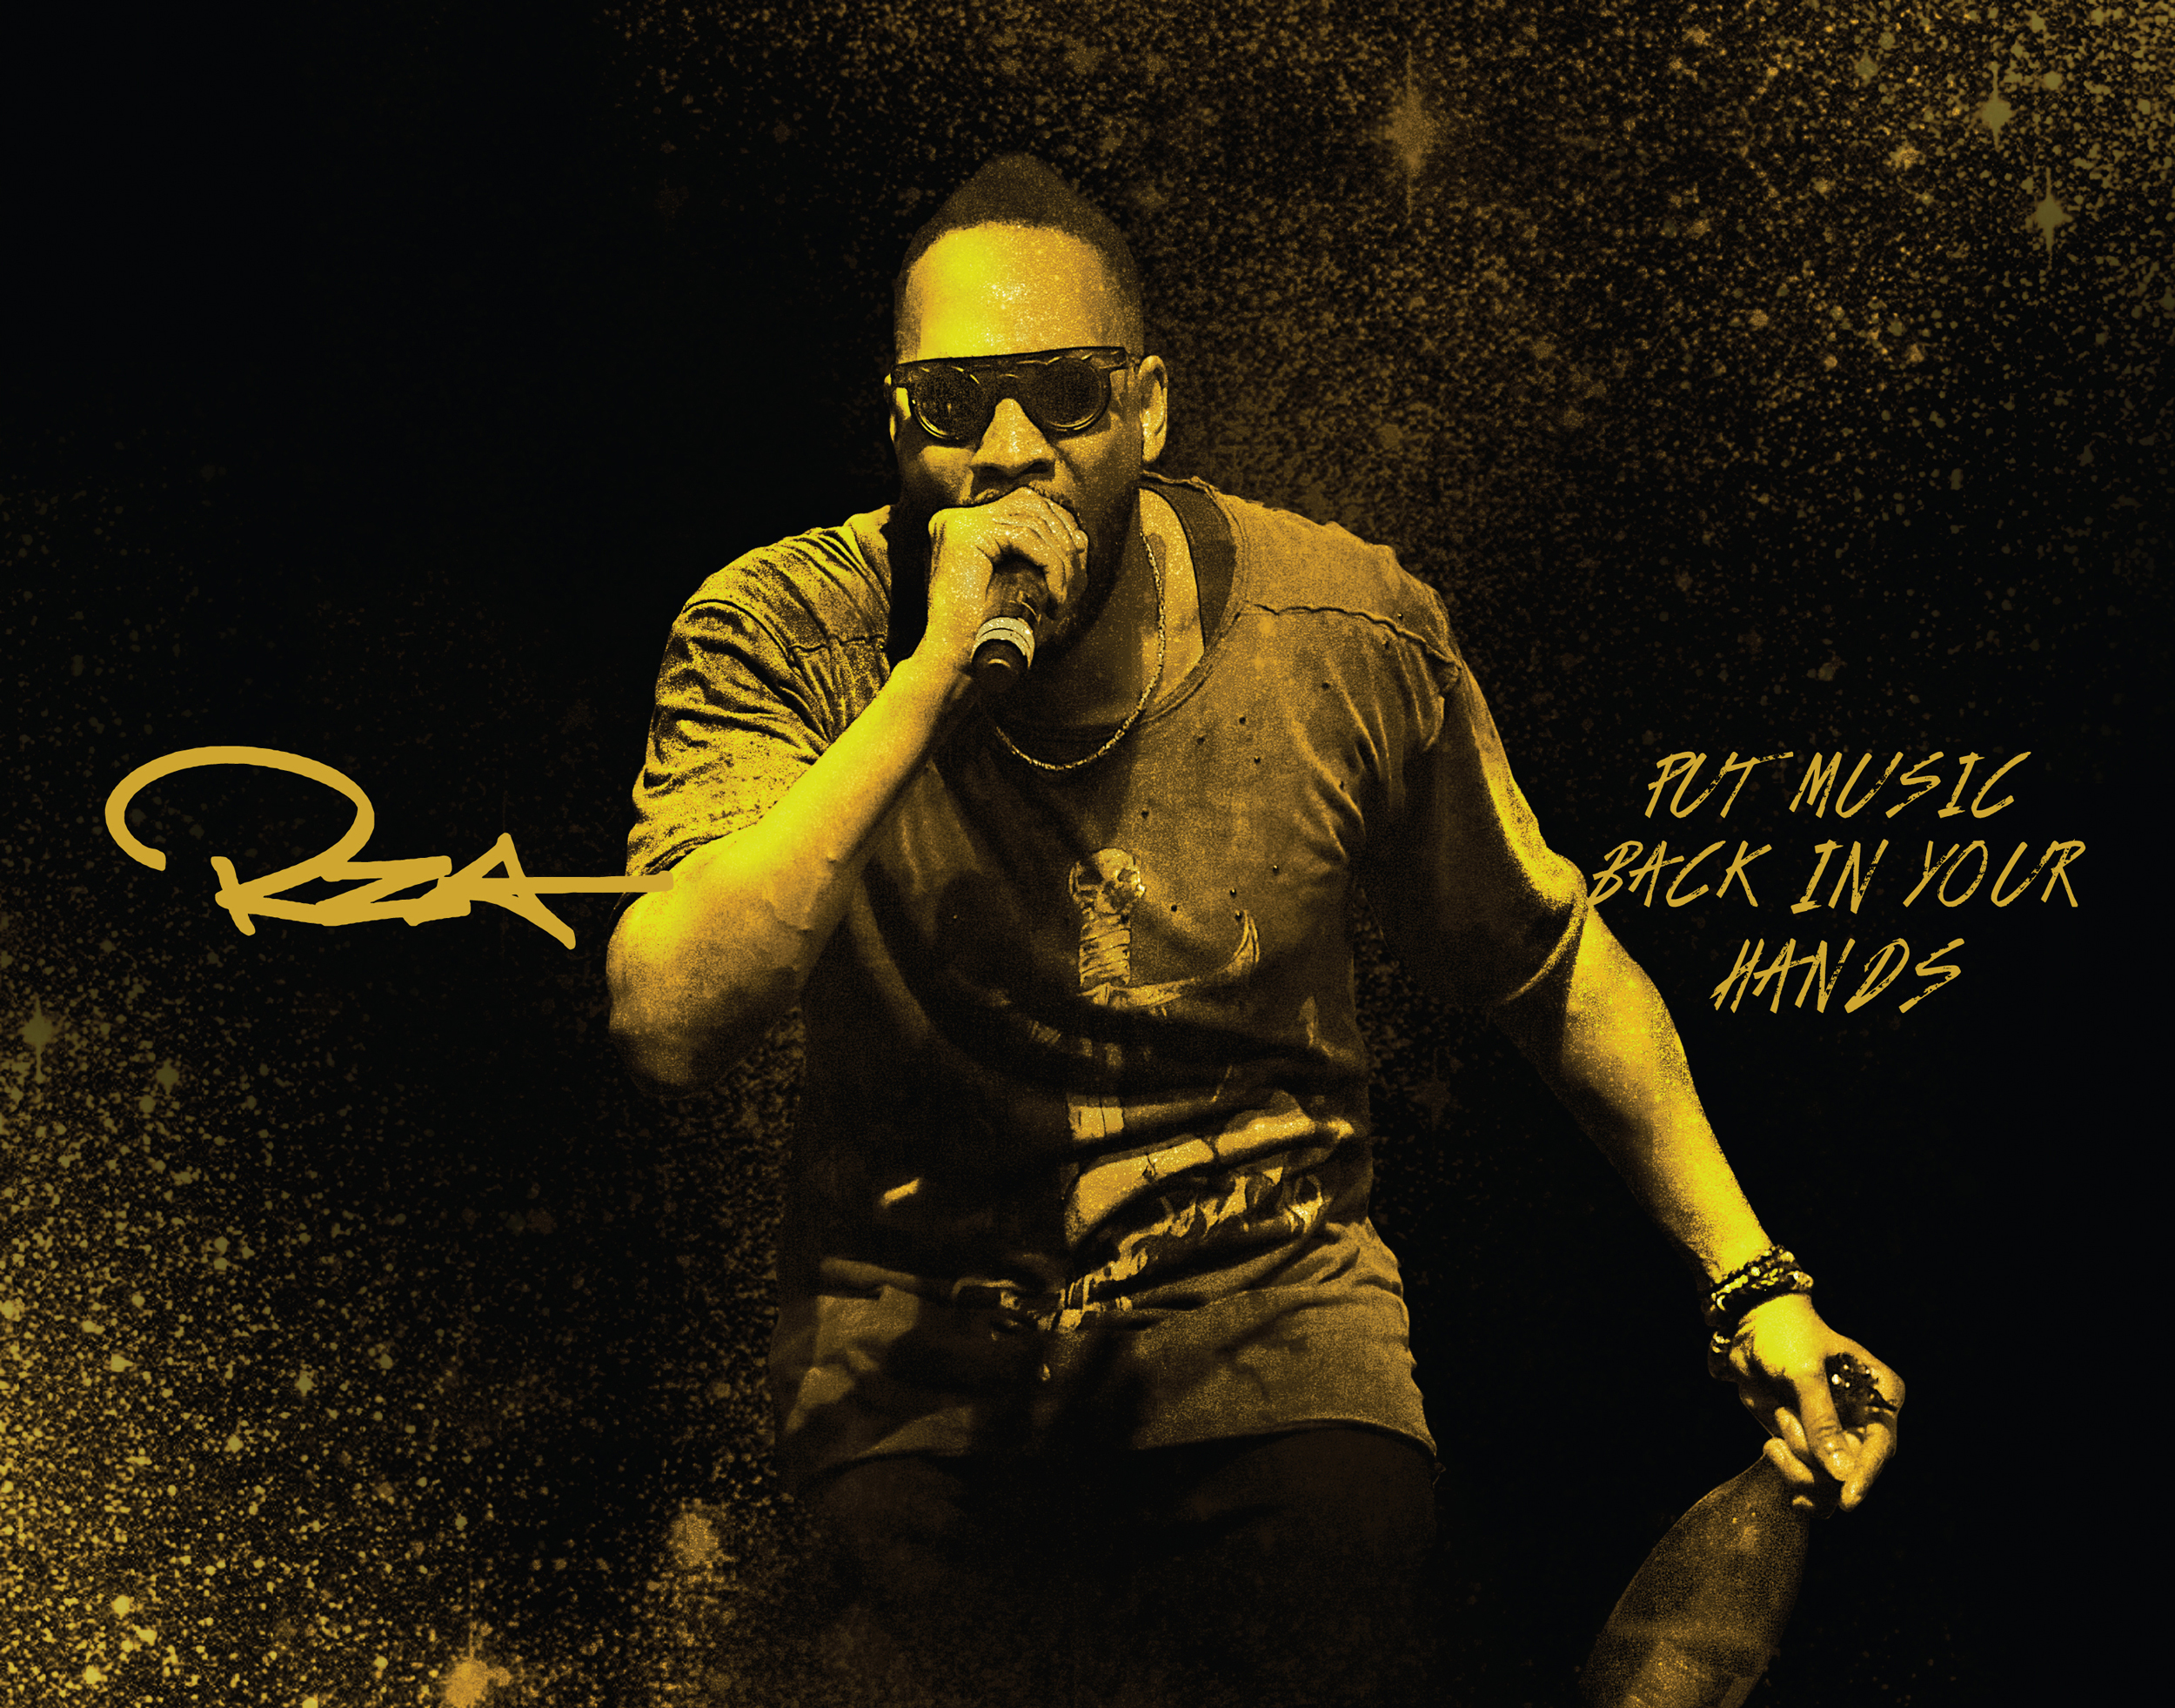 Dramatic image of RZA performing a concert with gold tint and script typography imposed over the image